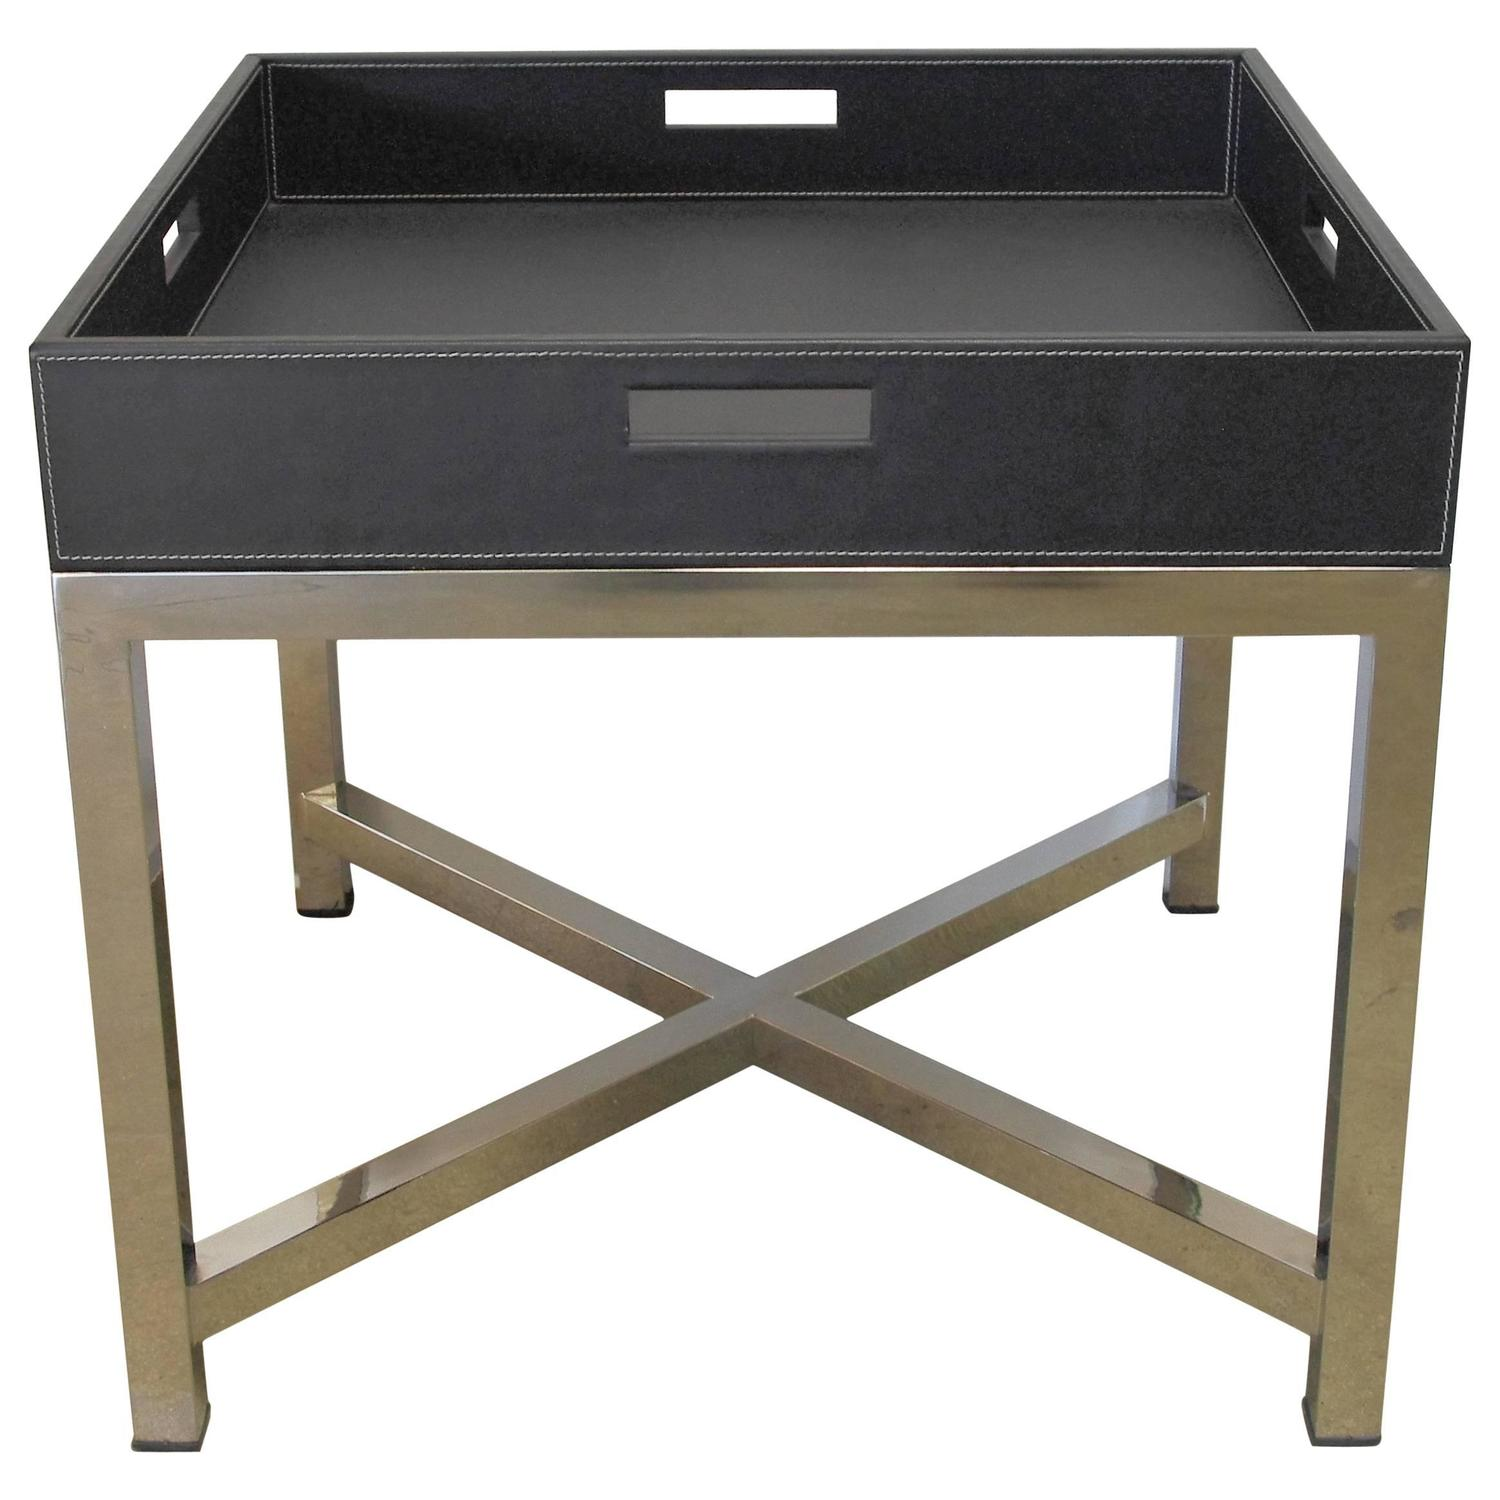 Black Leather And Stainless Steel Tray Table Fabio Ltd